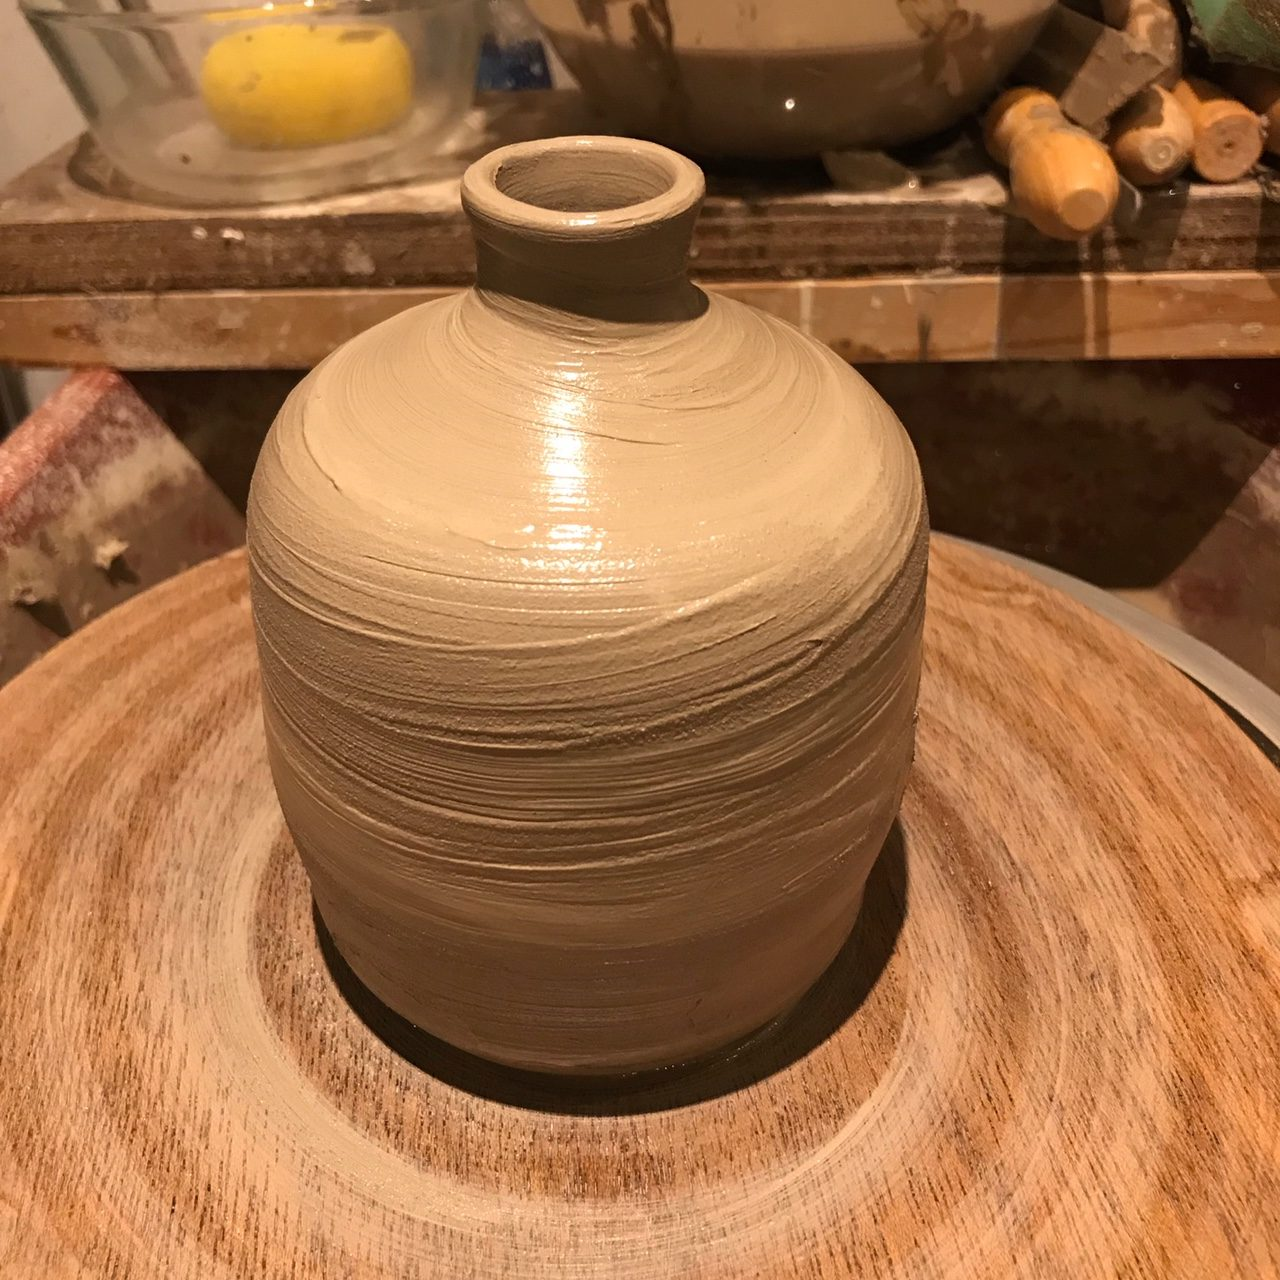 You are currently viewing Day 32: 100 Pots in 100 Days